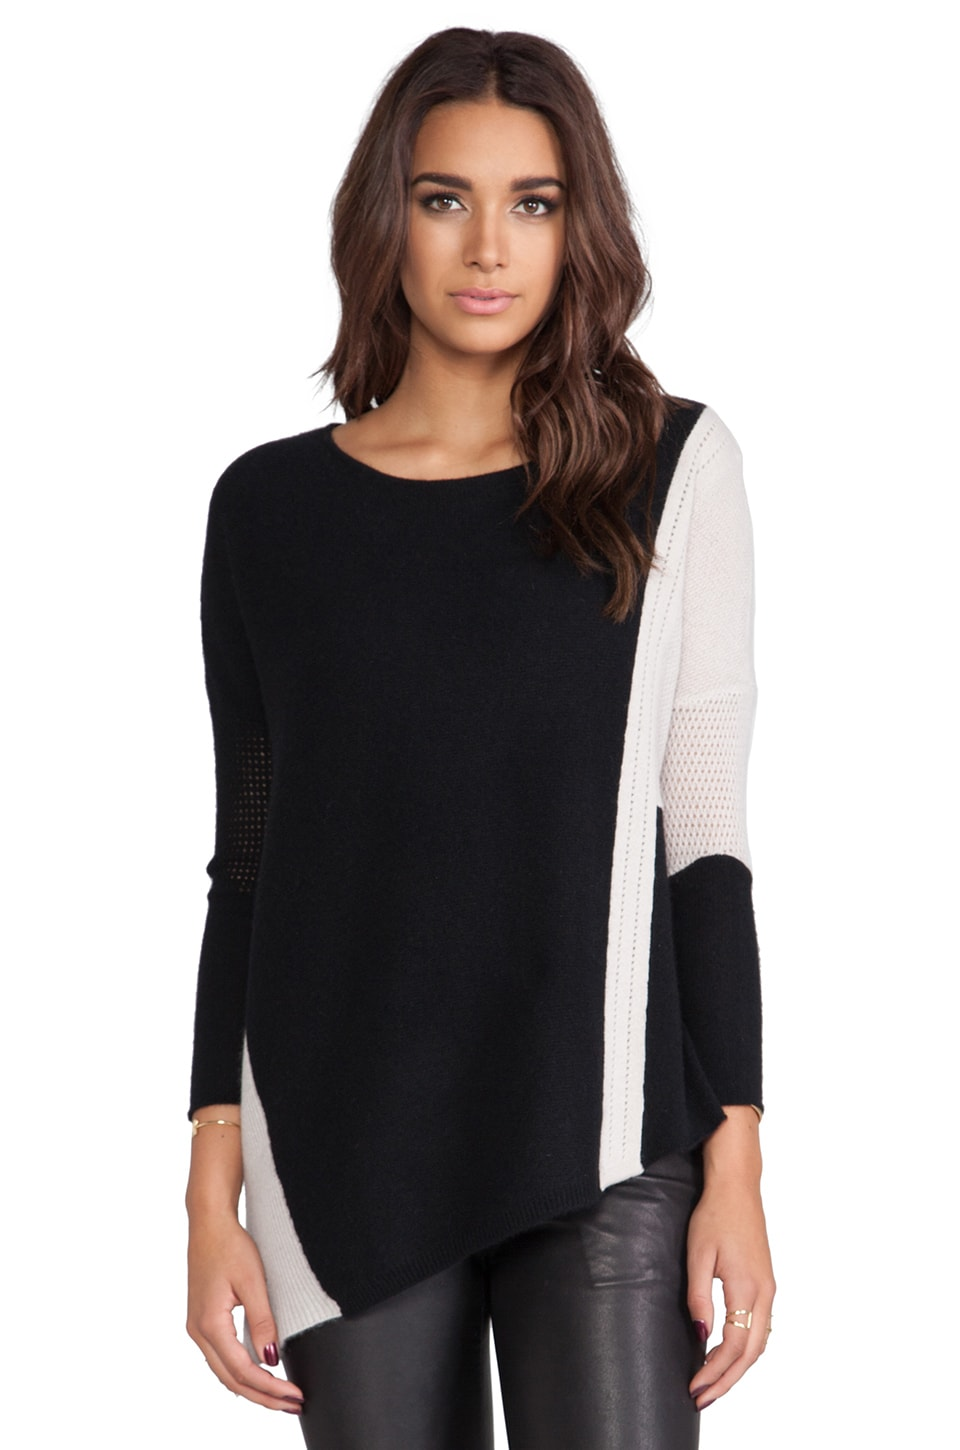 Velvet by Graham & Spencer Pauline Cashmere Classics Loose Long Sleeve w/ Asymmetrical Hem in Black/ Petal